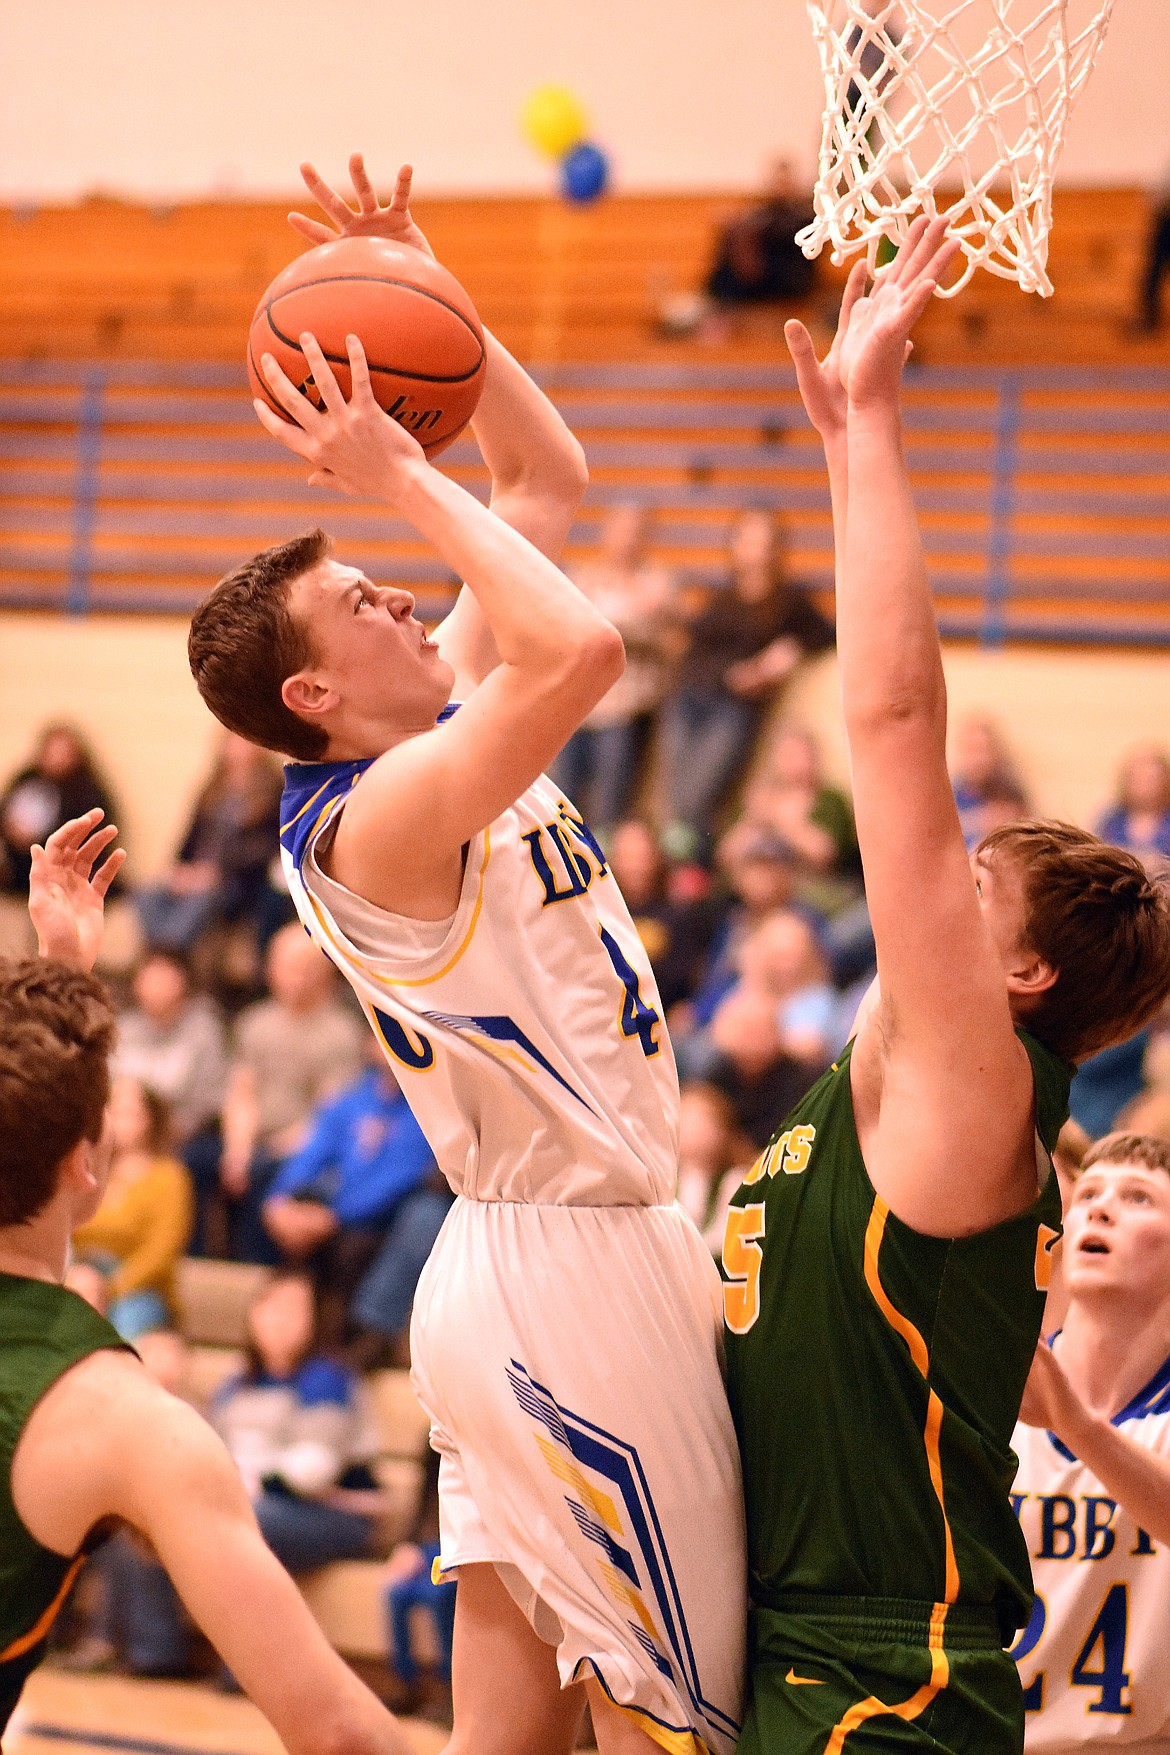 TJ Andersen goes up for a shot Feb. 21 against the Whitefish Bulldogs. (Duncan Adams/The Western News)